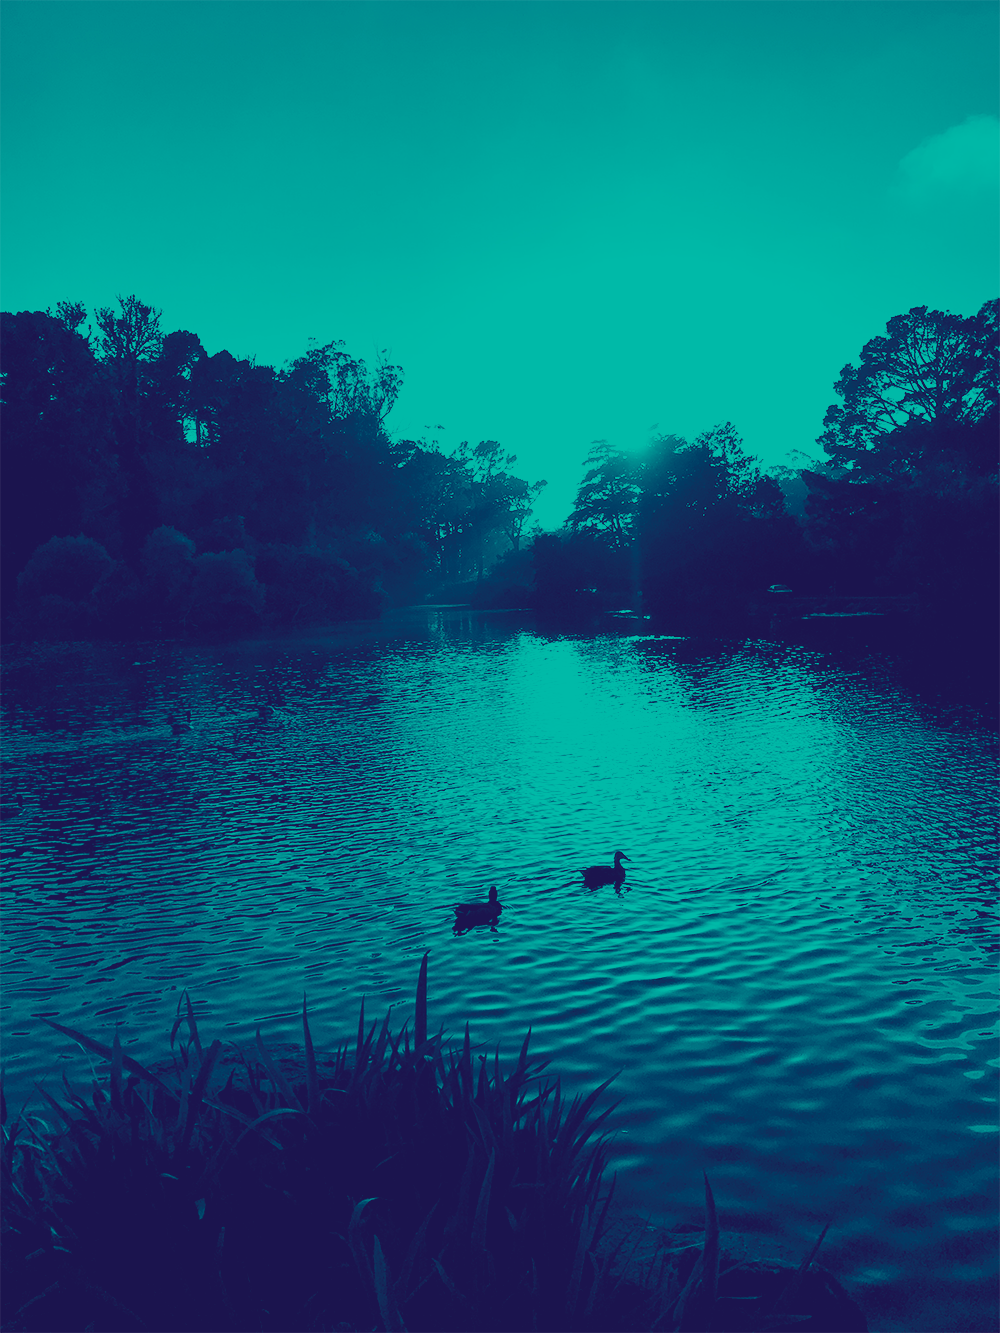 Two ducks float on Stow Lake. The sun is low on the horizon and highlights the water under the ducks. The lake edge is ringed in trees and grasses. The image has a blue tinted overlay.